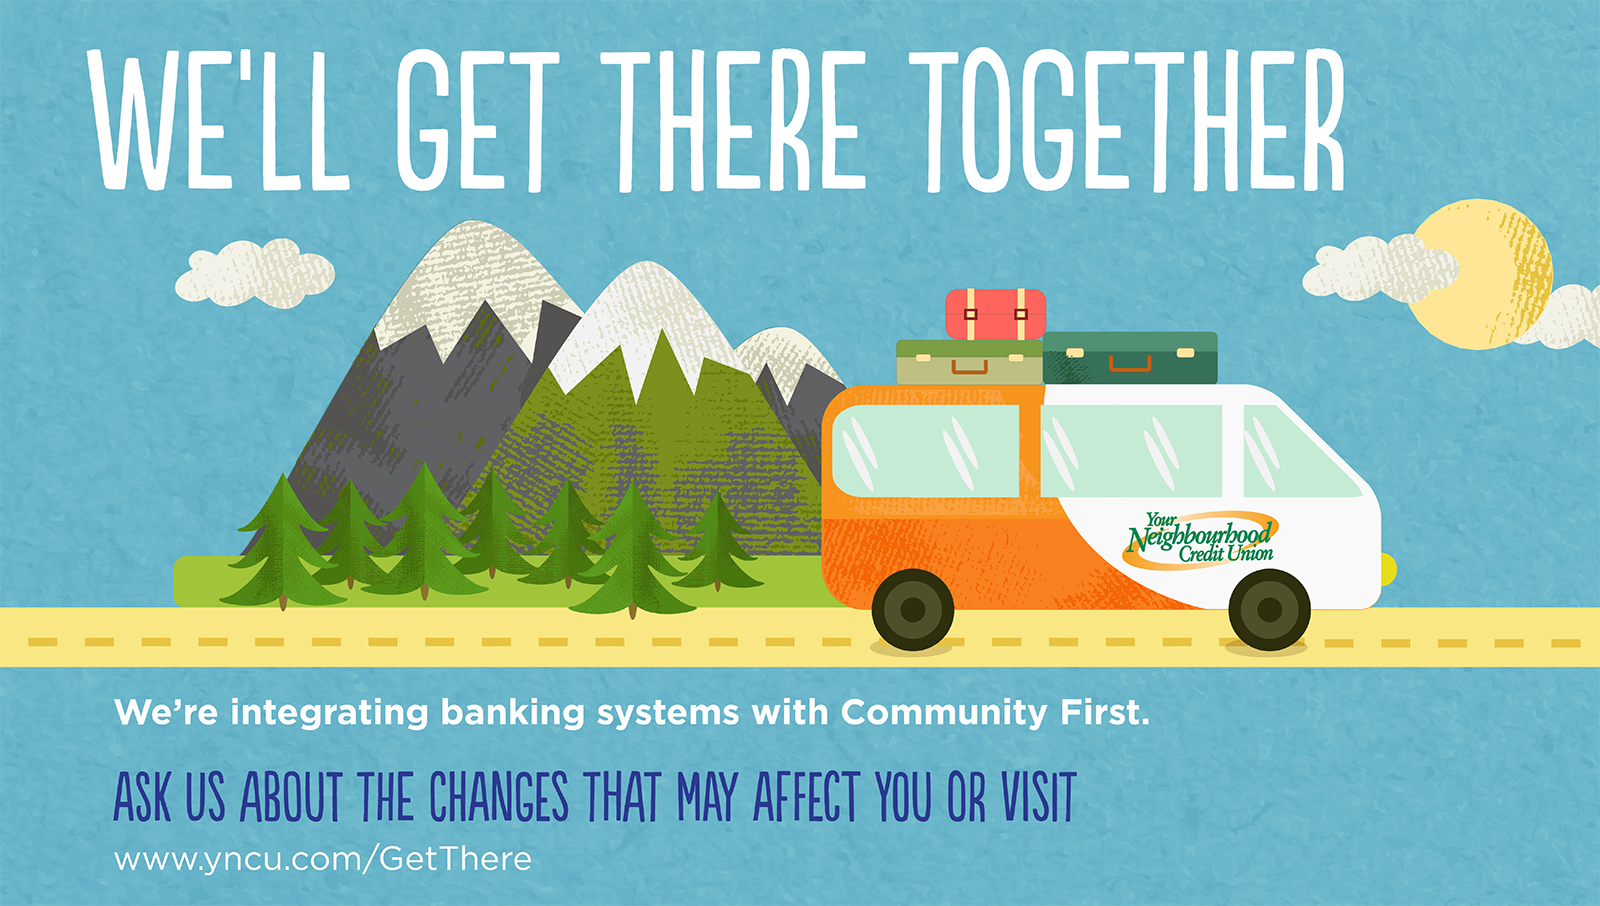 Cartoon drawing of a Your Neighbourhood Credit Union van with suitcases on the roof driving down a road with mountains and trees.